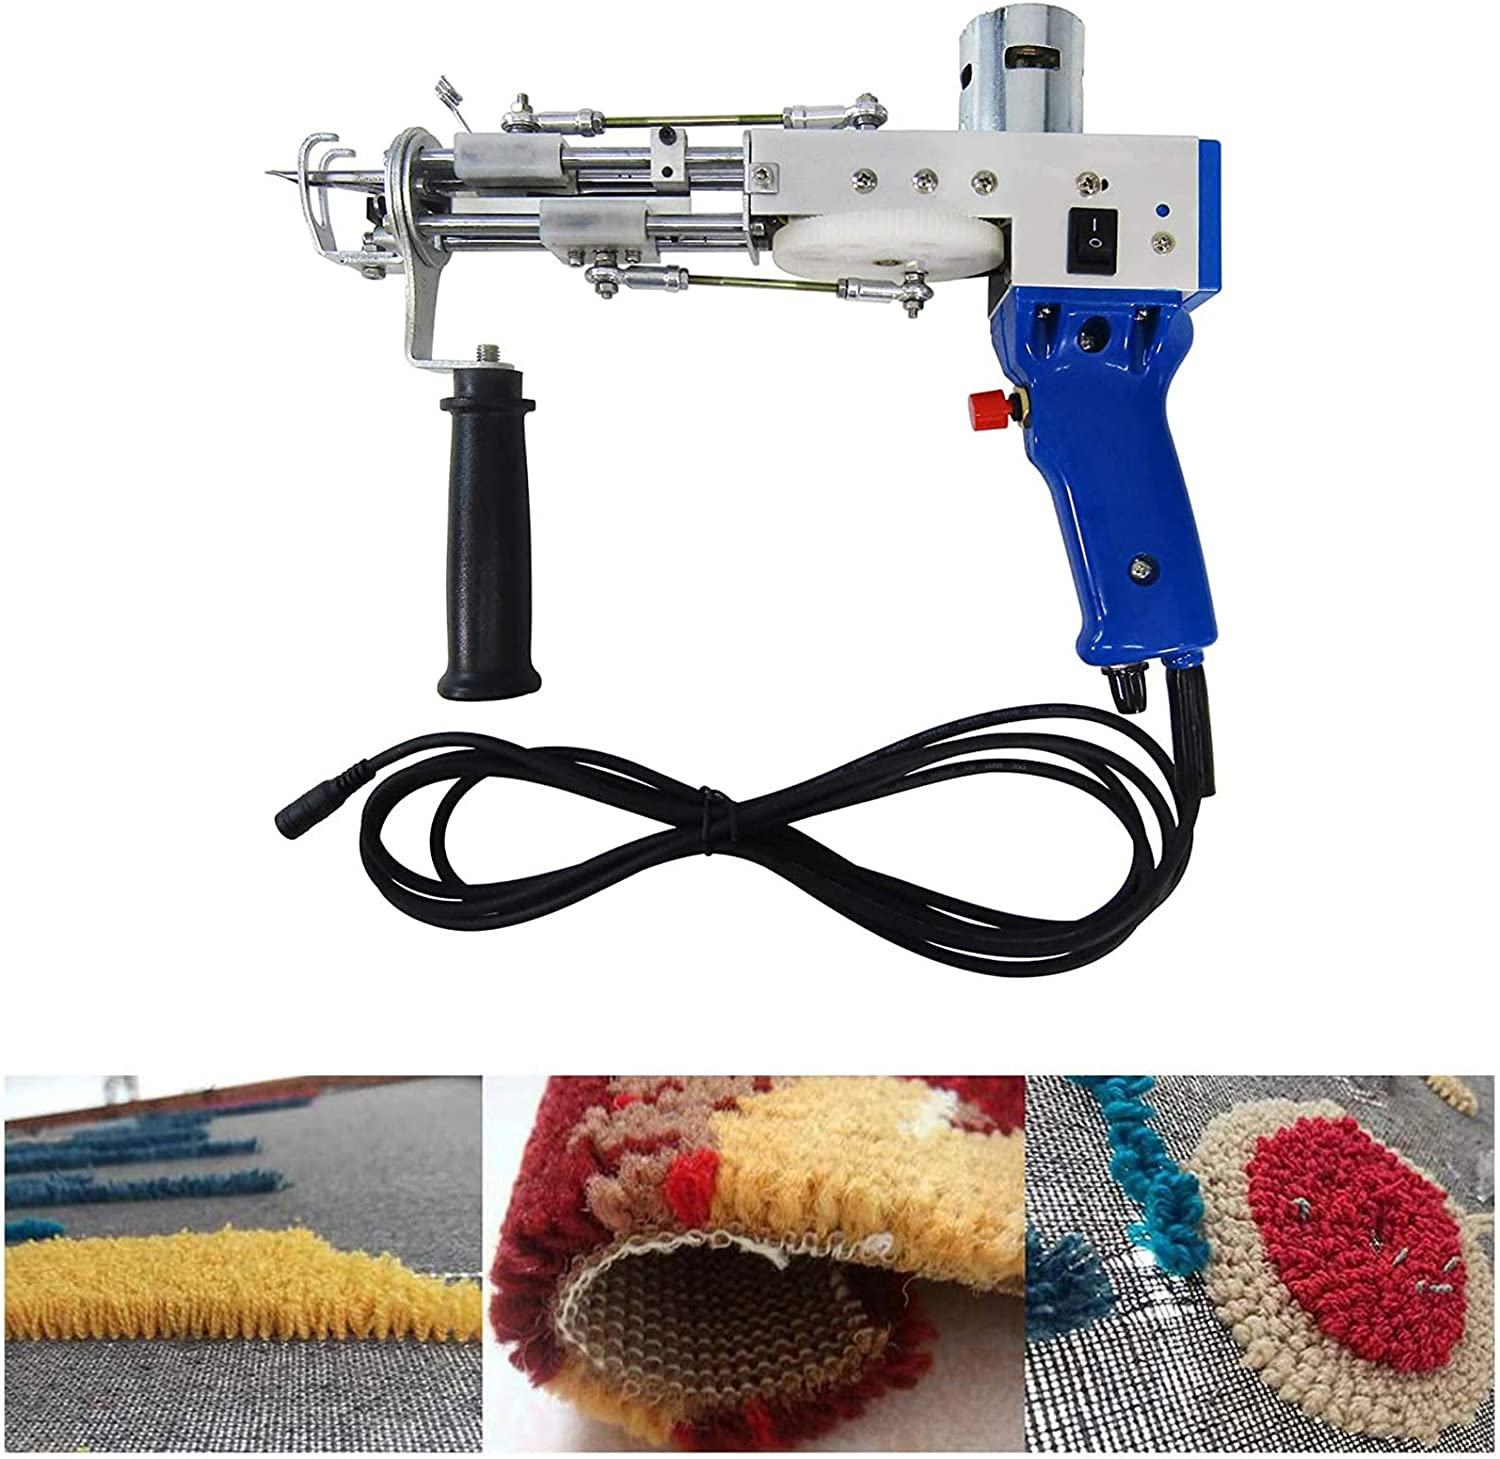 Cut Fixed price for sale Pile Rug Tufting Sale Special Price Gun. Electric Used Carpet Weaving Machine.